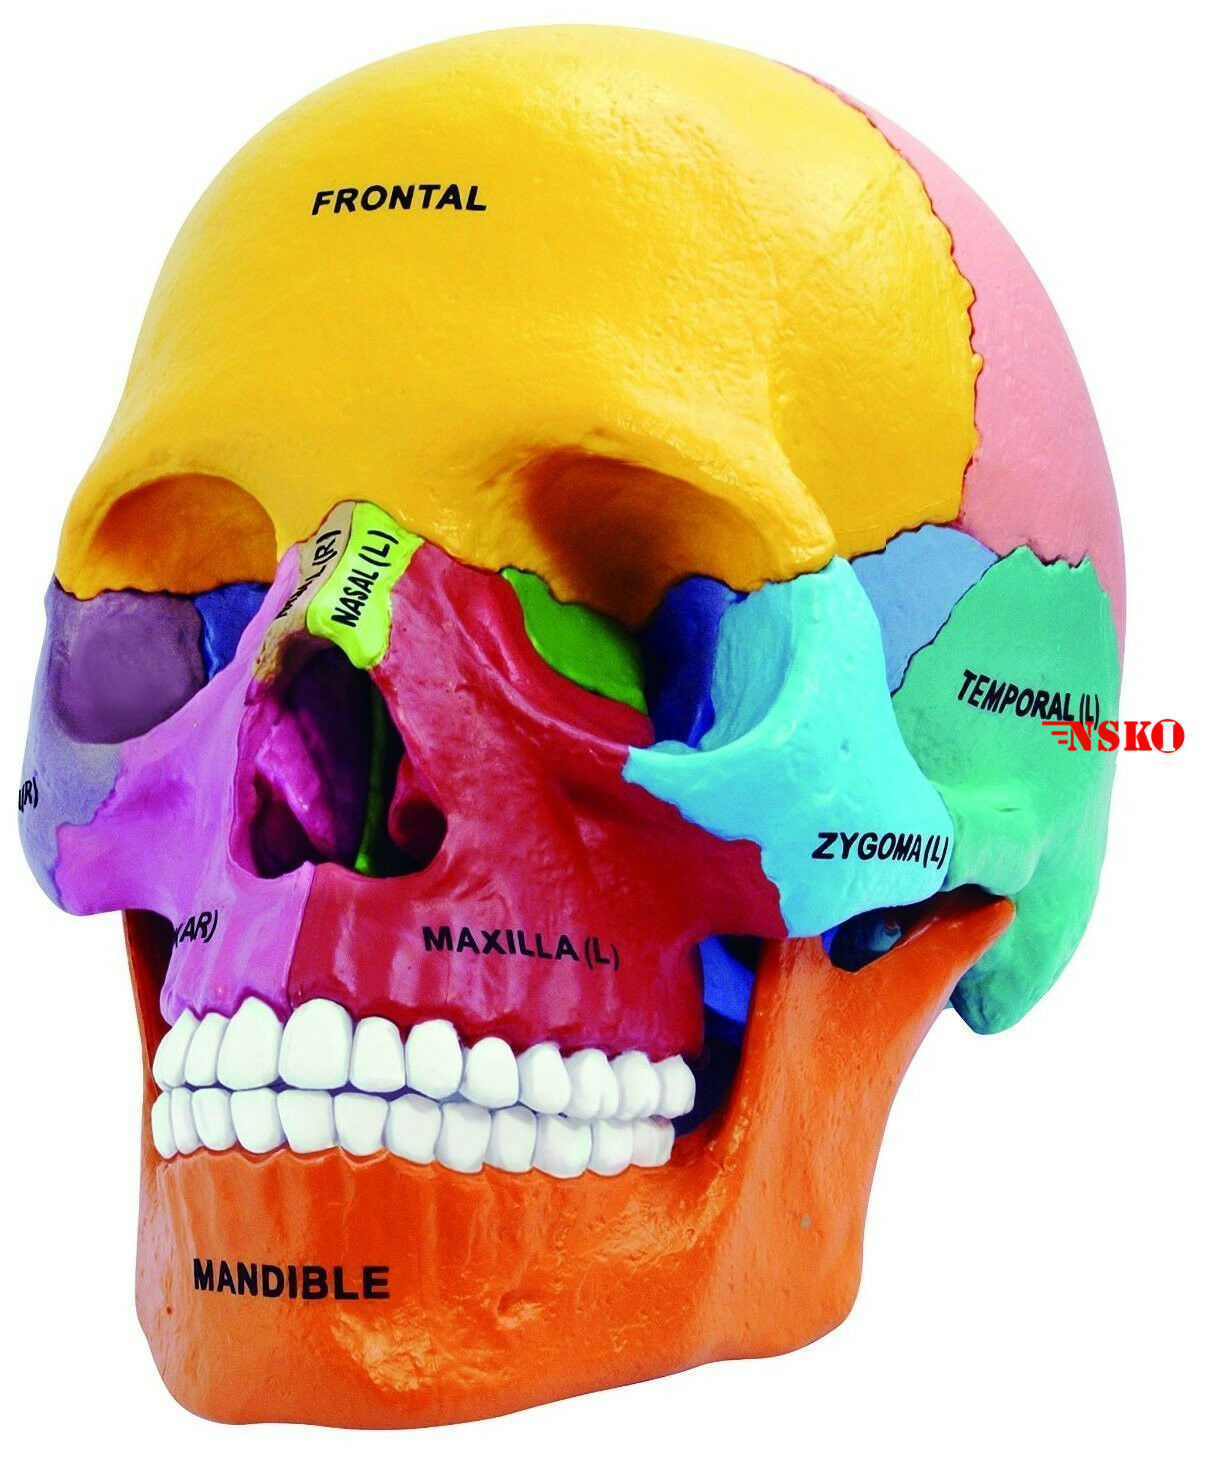 New 4d Puzzle Didactic Exploded Beauchene Skull Color Human 1 2 Anatomy 3d Model